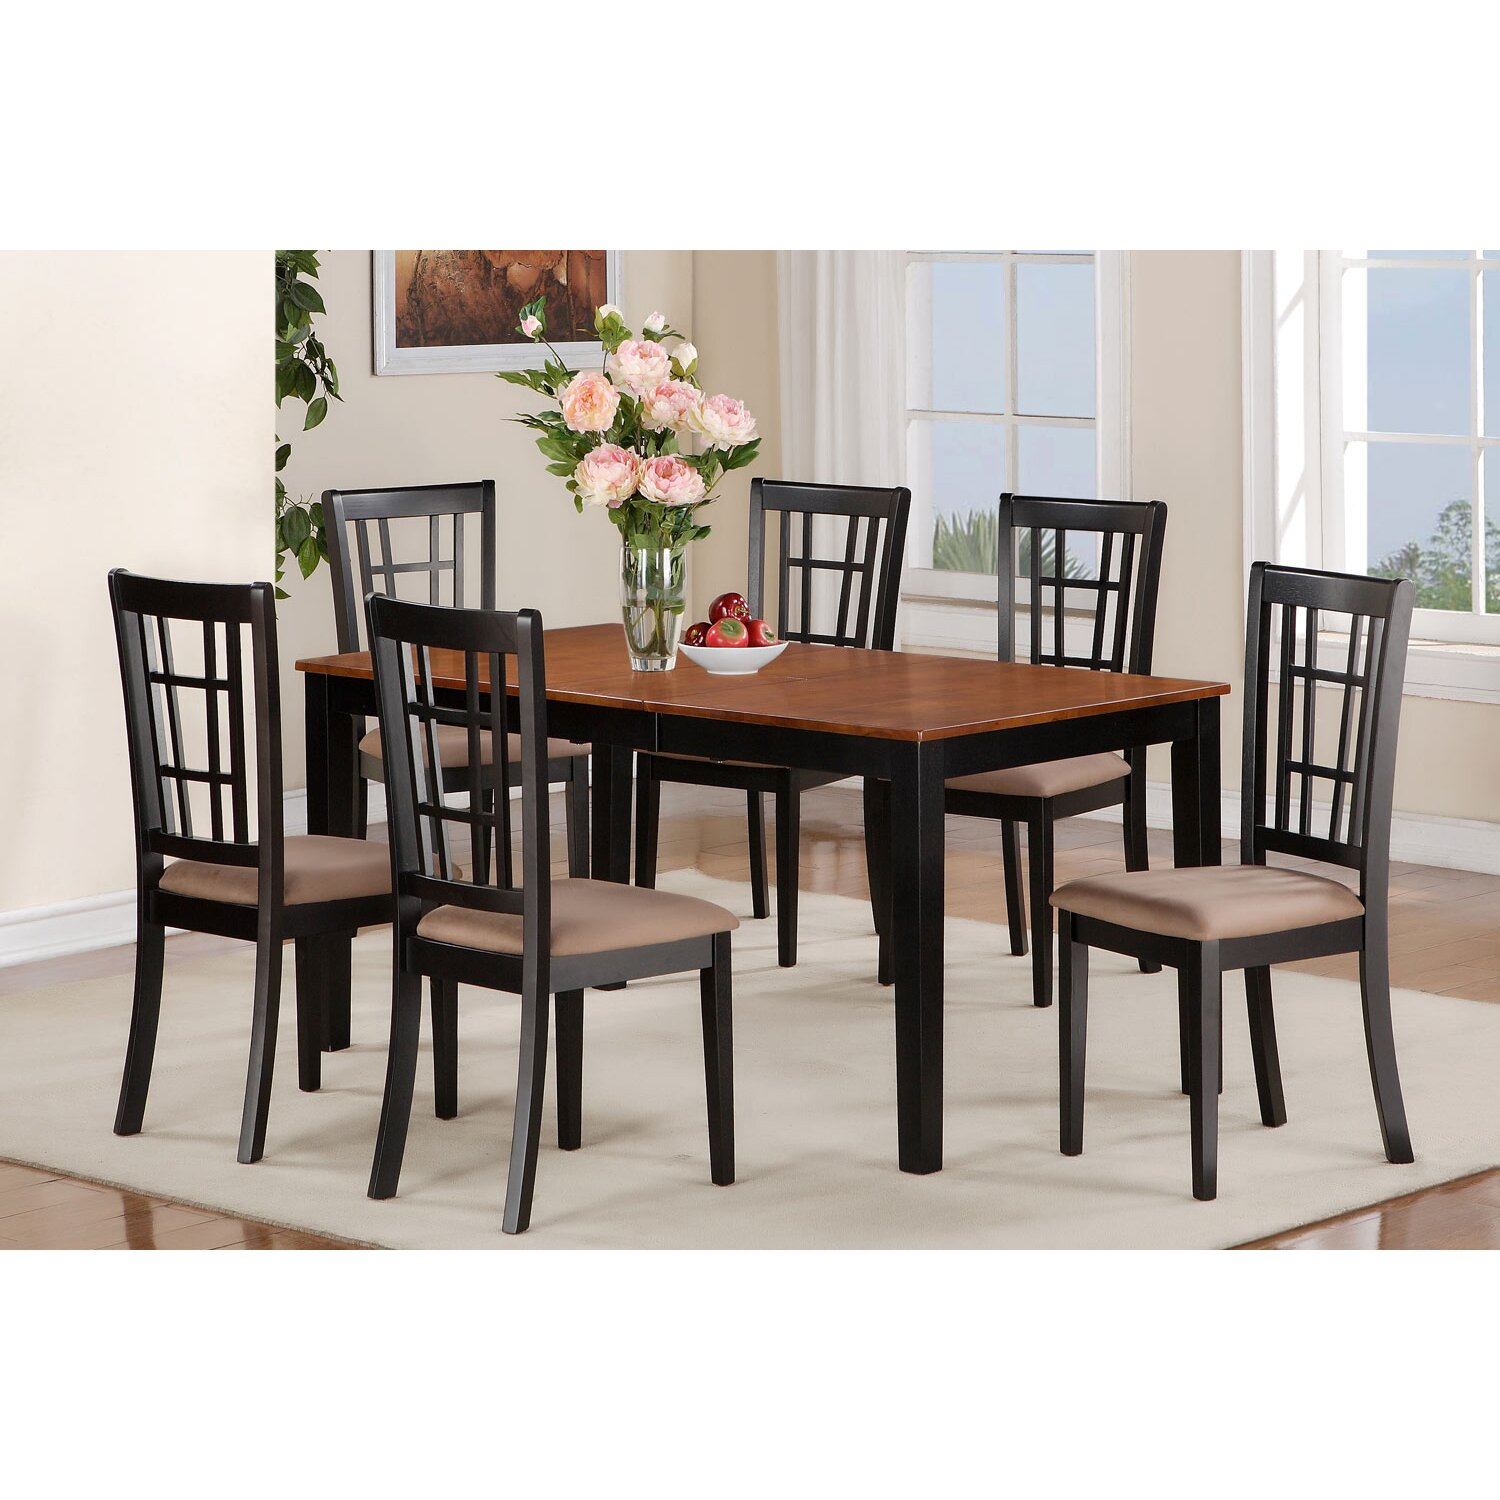 East west nicoli 7 piece dining set reviews wayfair for Furniture kitchen set